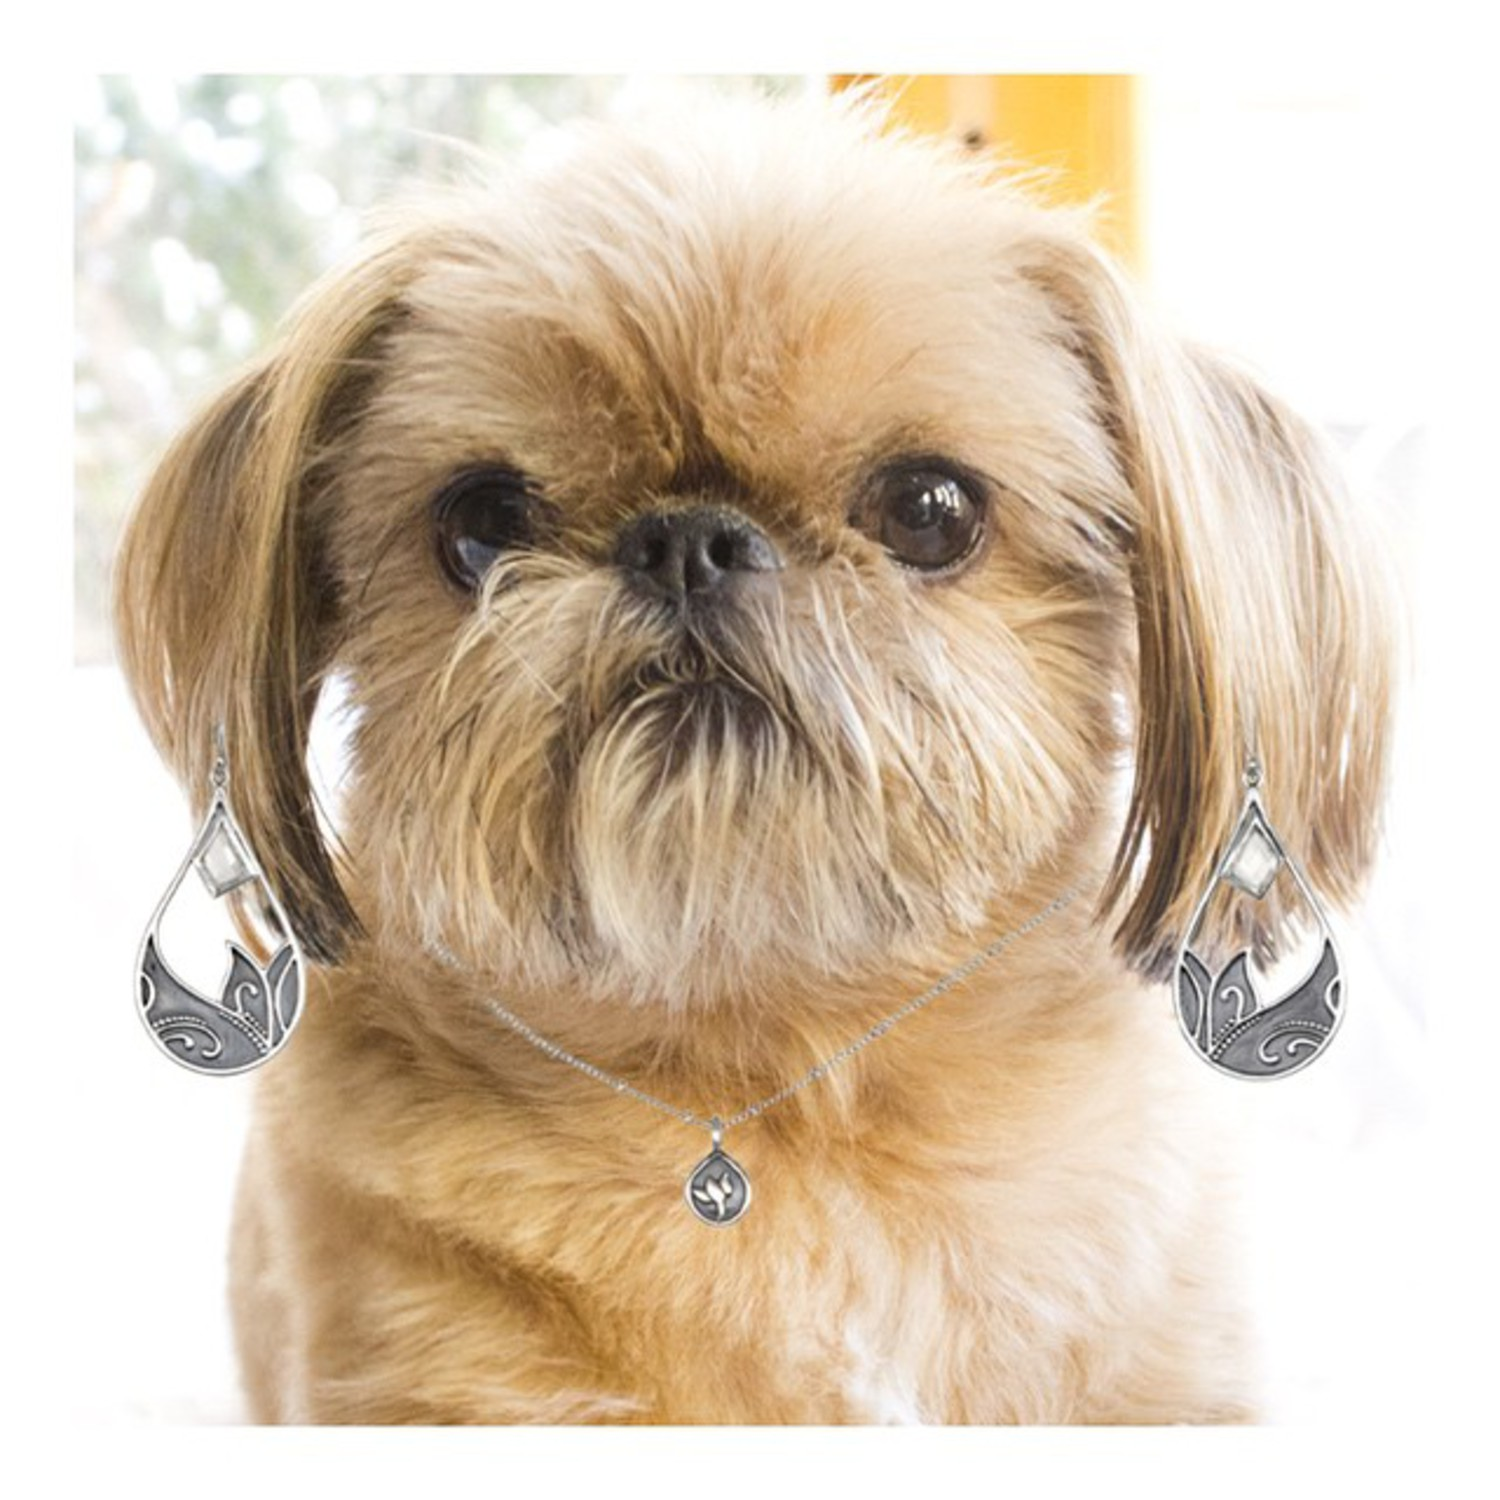 How could we resist?! Happy National Puppy Day! | #NationalPuppyDay #springcollection #instadog #instapuppy #puppylove #dogsofinstagram #instalike #instalove #love #fun #cute #adorable #puppy #jewelry #loveit #like #picoftheday #bestoftheday #photo #photooftheday #happy #smile #Monday #ig #igers #igdaily #style #SatyaStyle #SatyaJewelry #DesignedForTheJourney🐶🐾✨😍